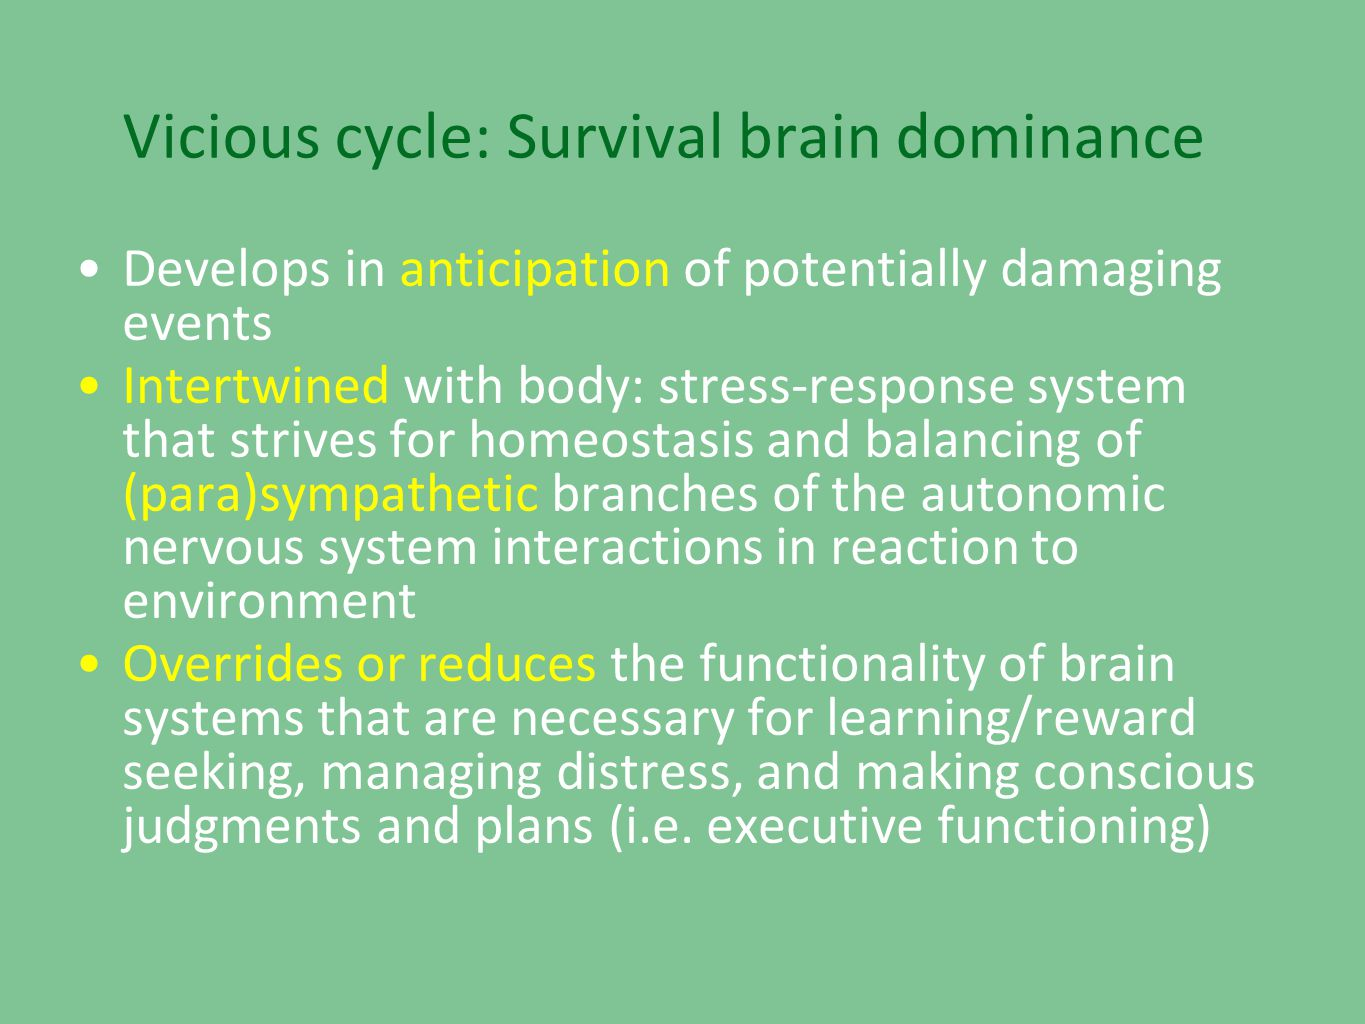 Vicious cycle: Survival brain dominance